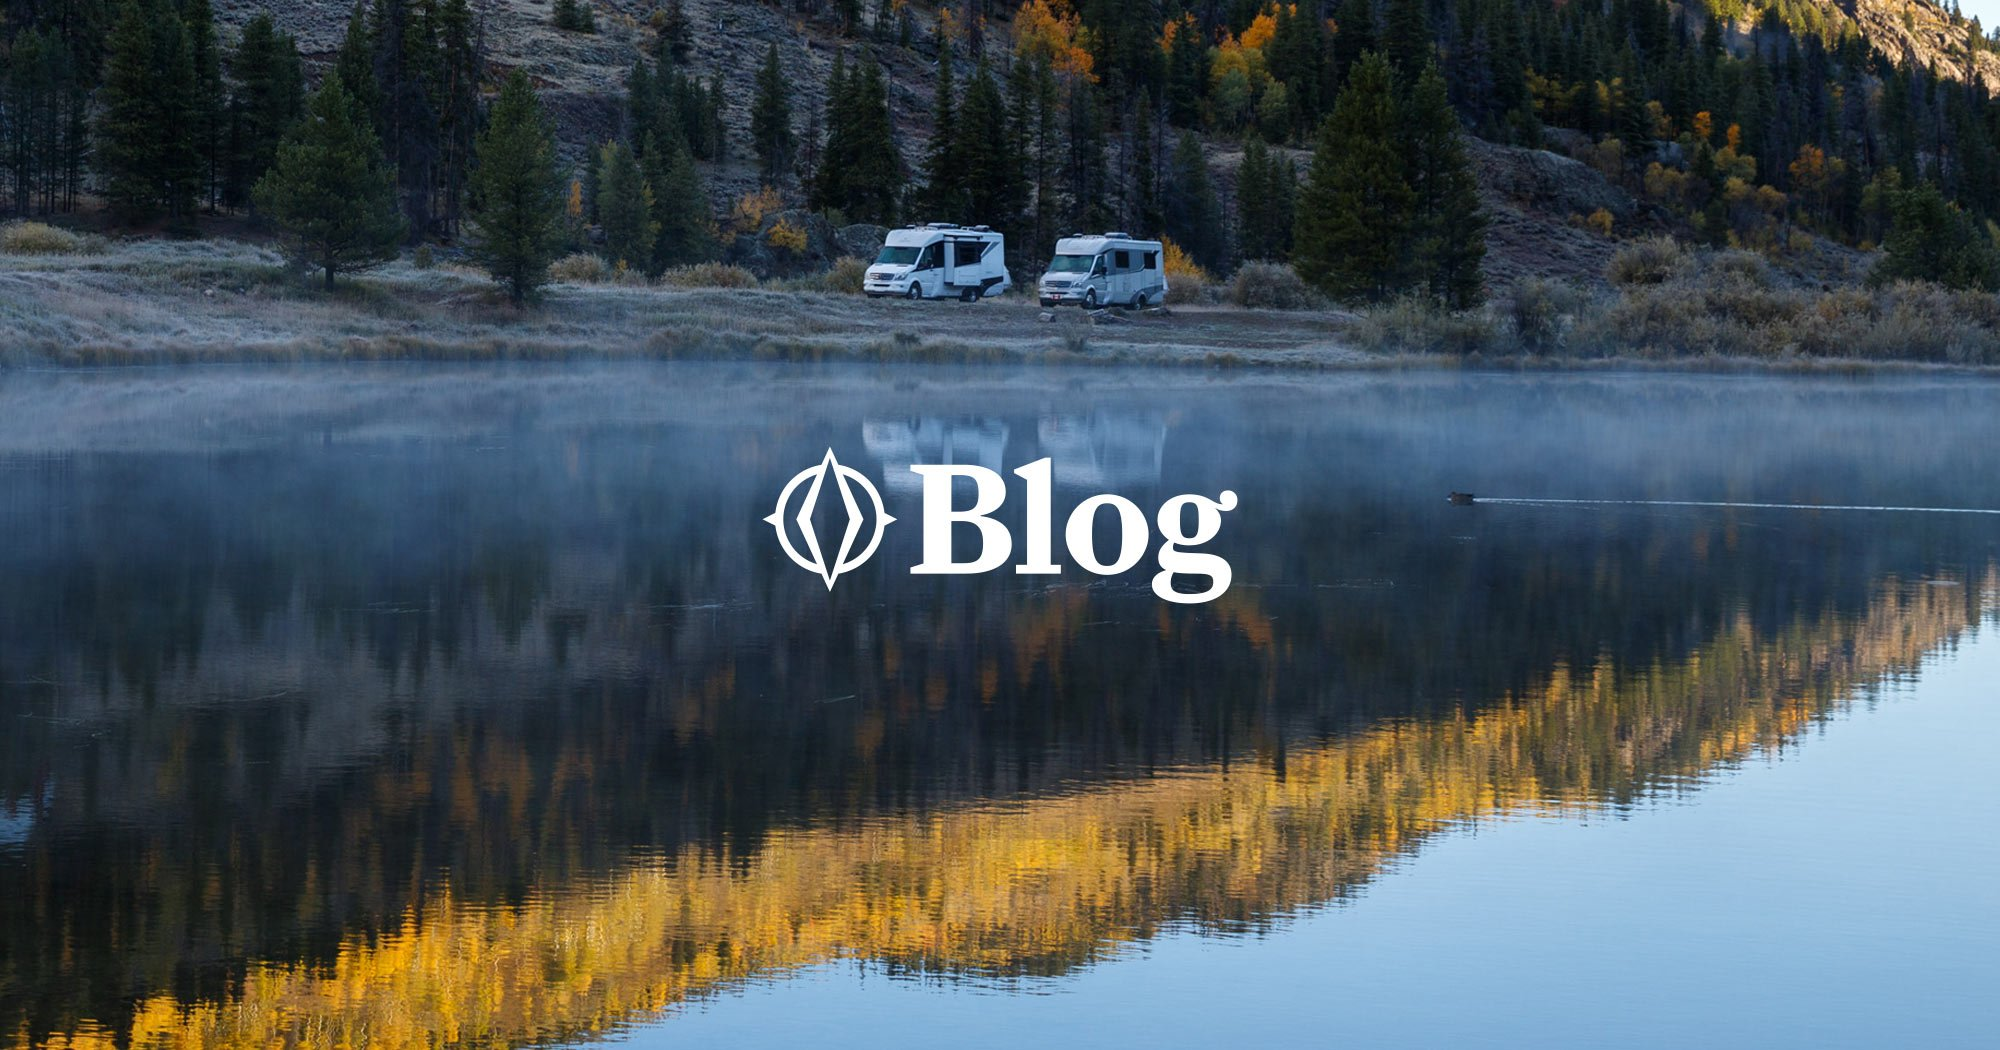 Leisure Travel Blog - RV lifestyle travel stories, RV tips, reviews